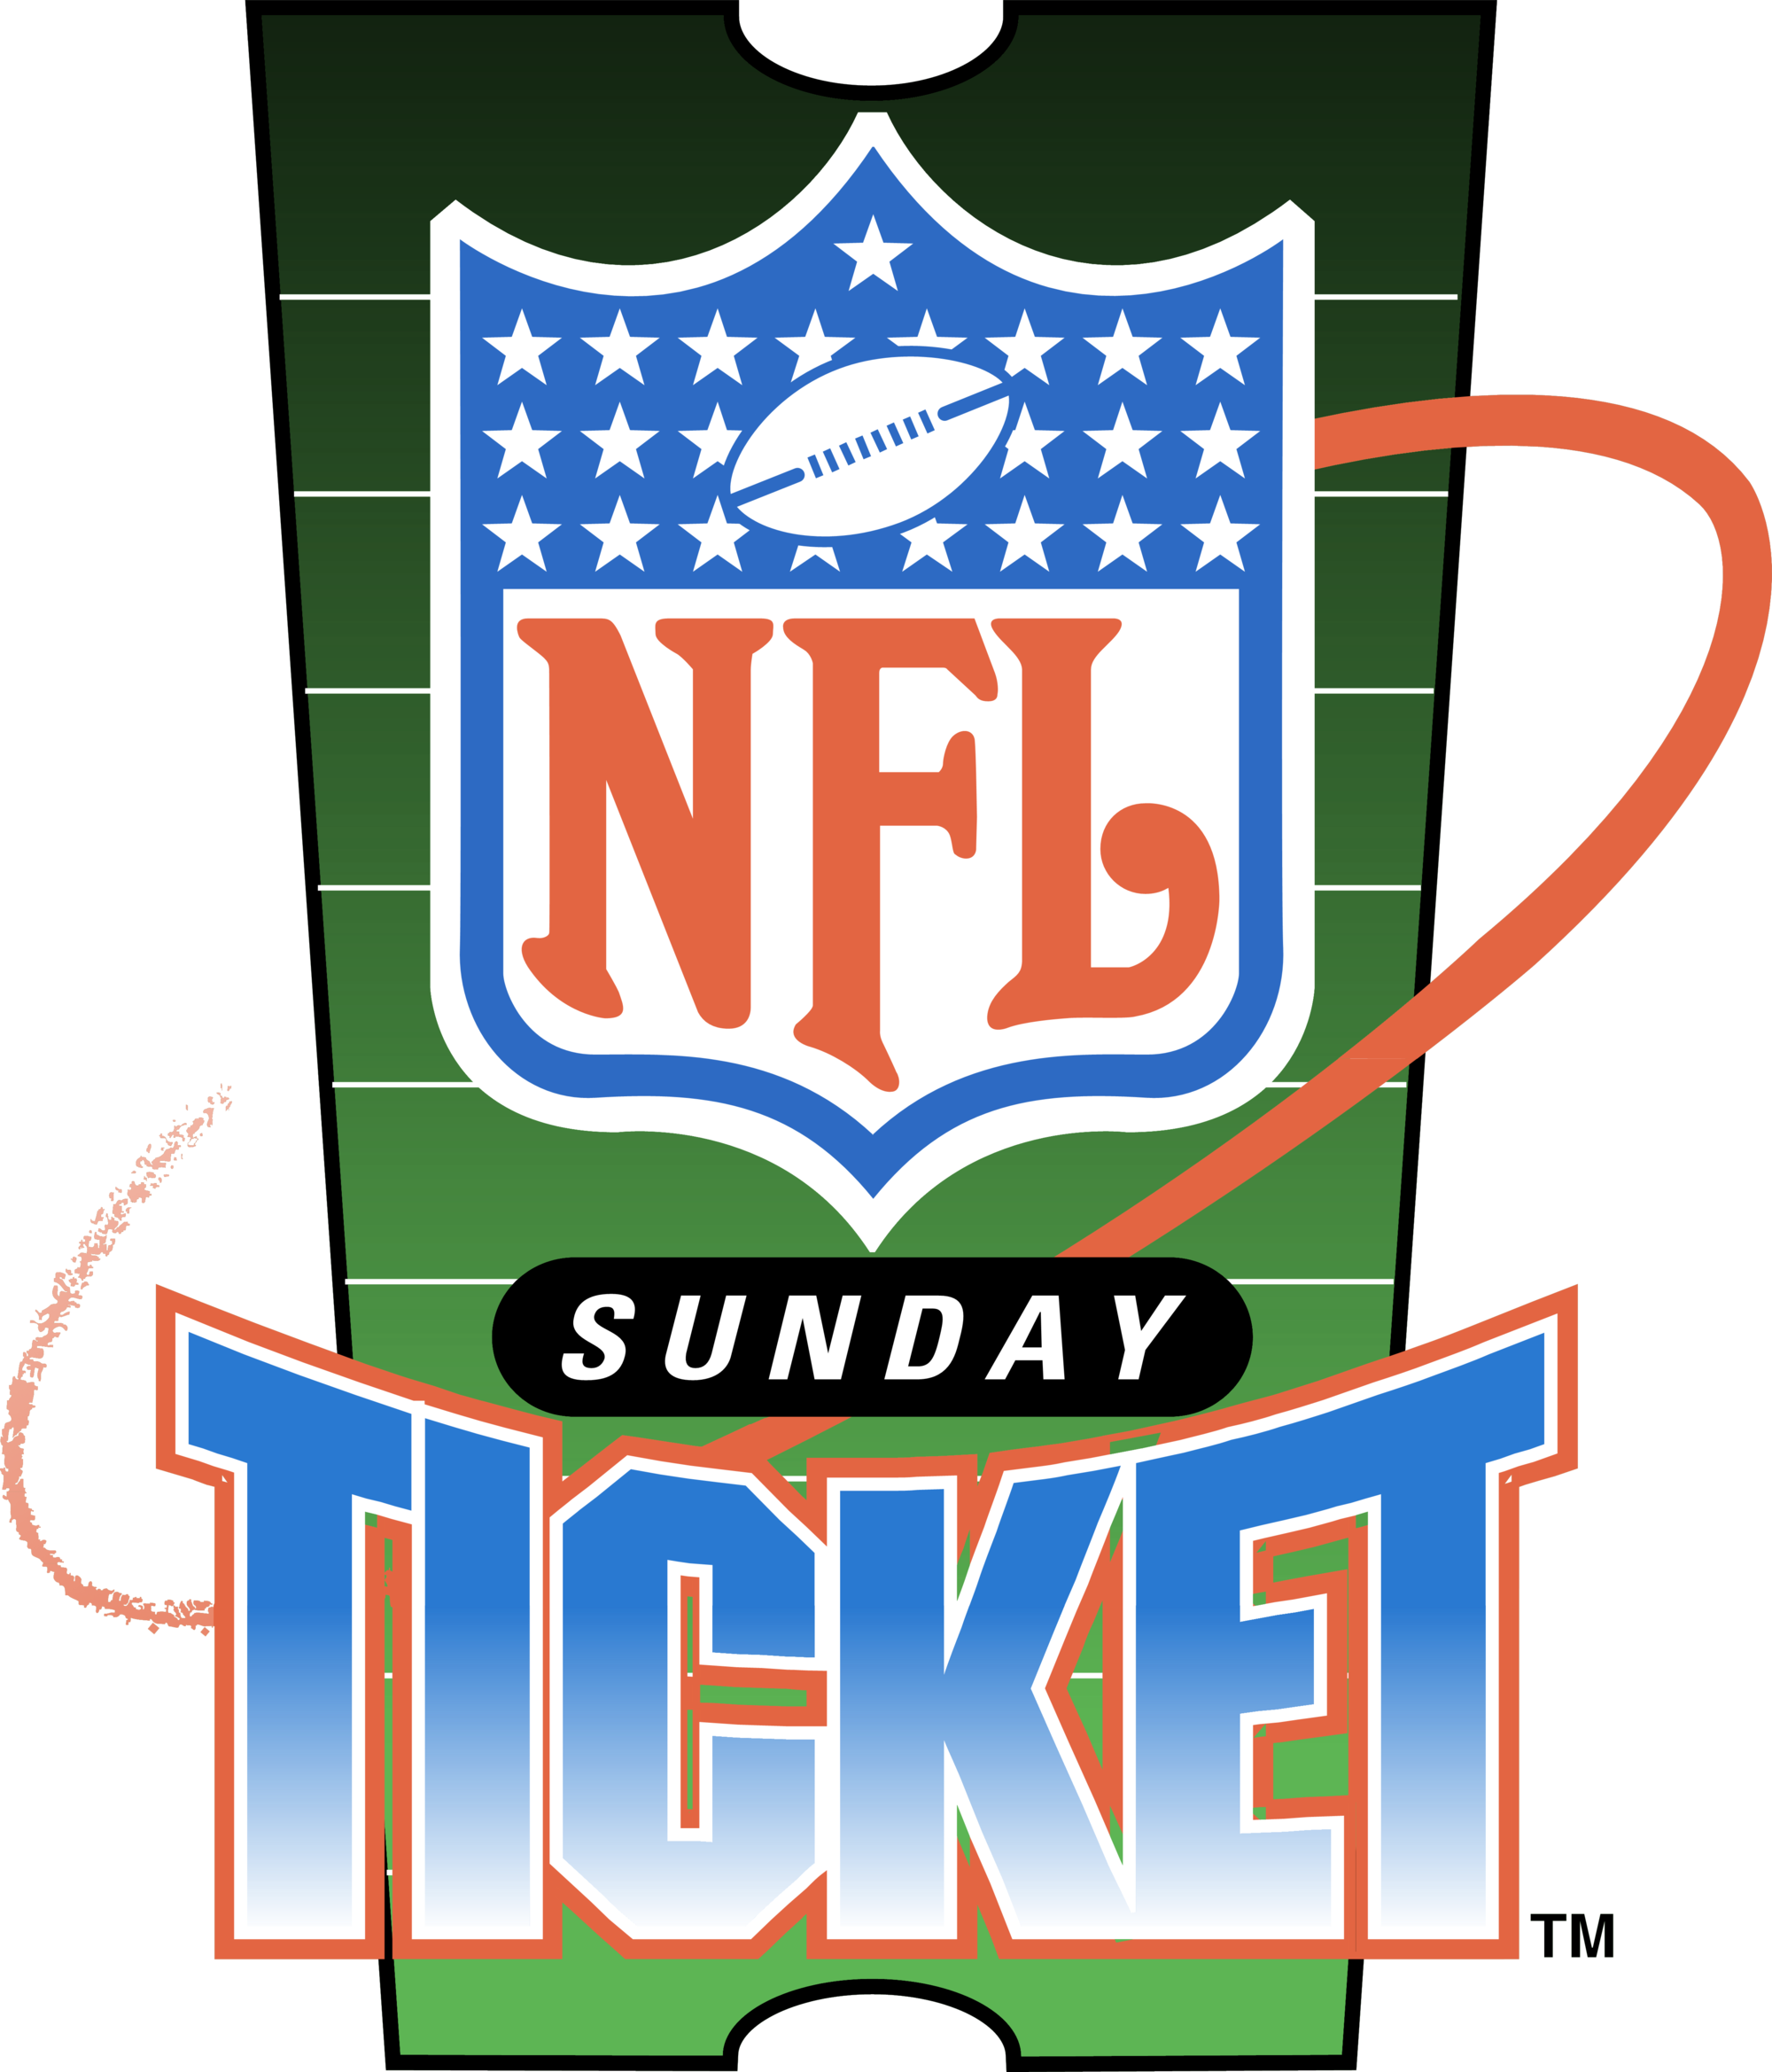 Sunday ticket logo png. Nfl logopedia fandom powered